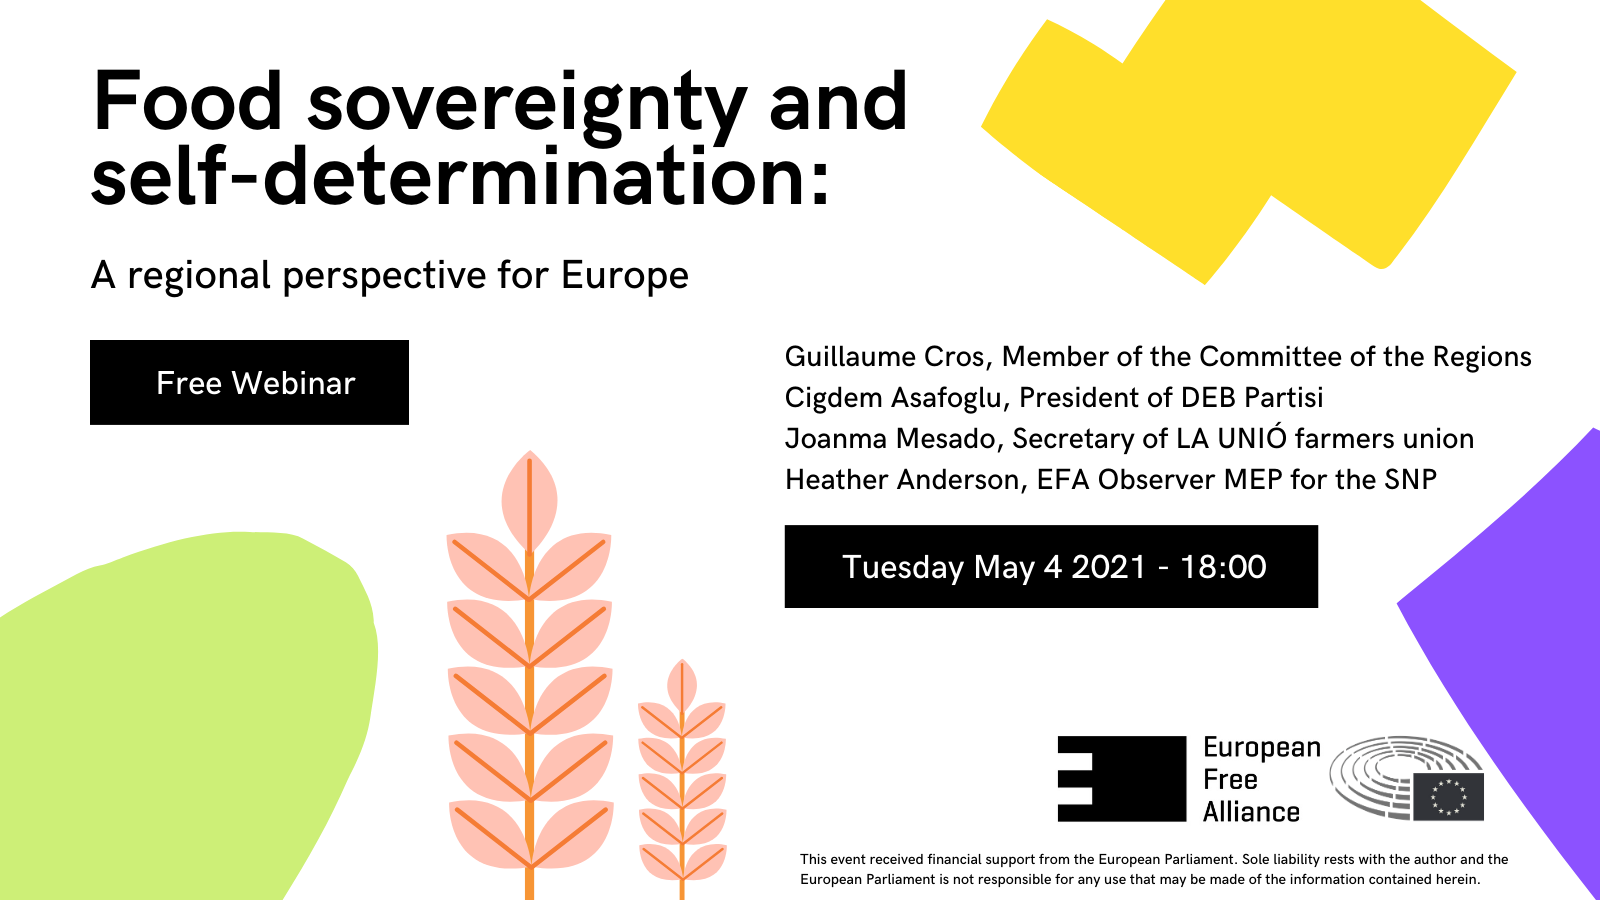 WEBINAR: Food Sovereignty and Self-Determination